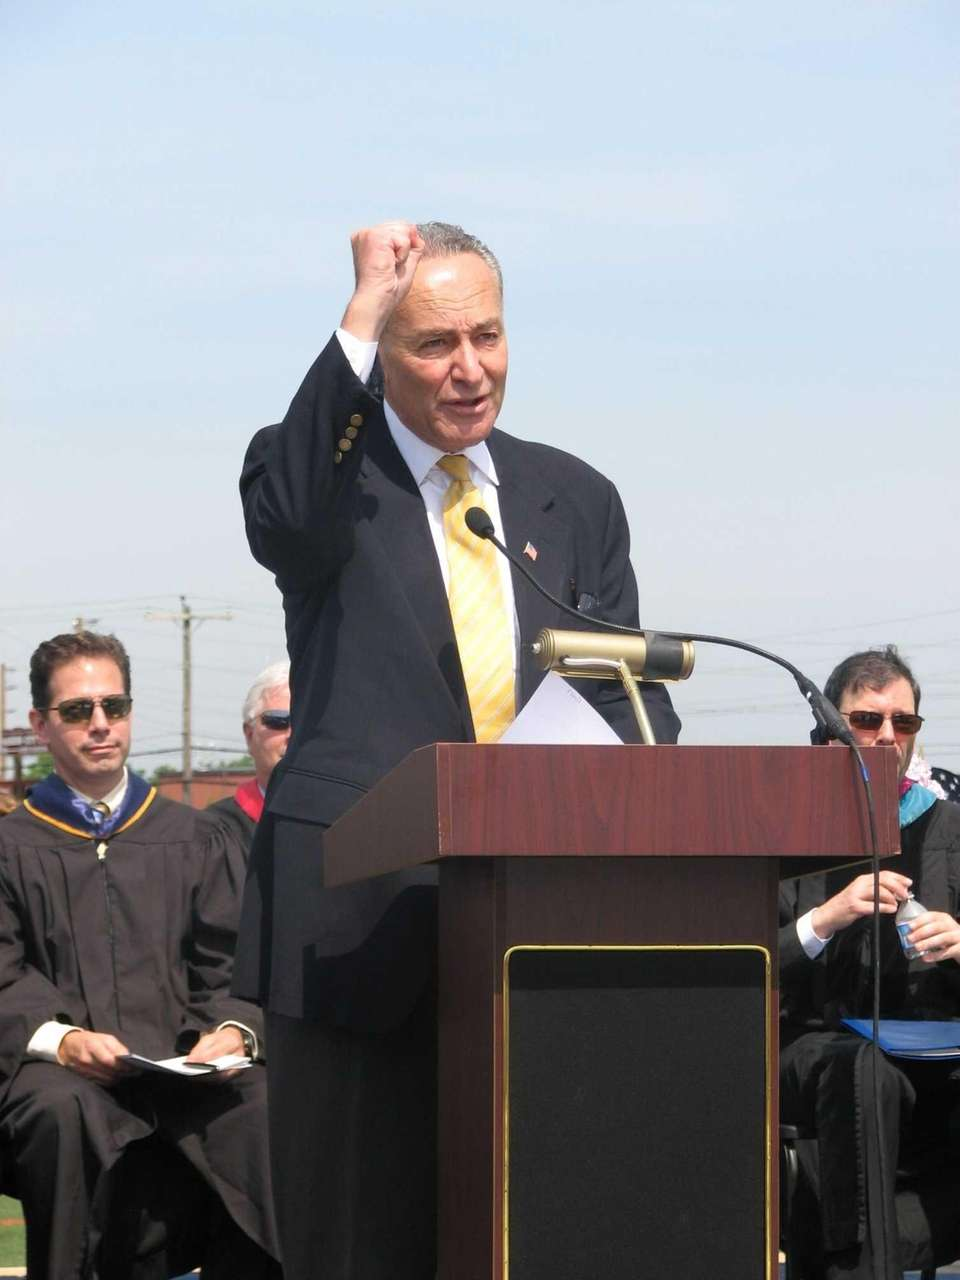 Sen. Charles Schumer (D-N.Y.) addresses Garden City High